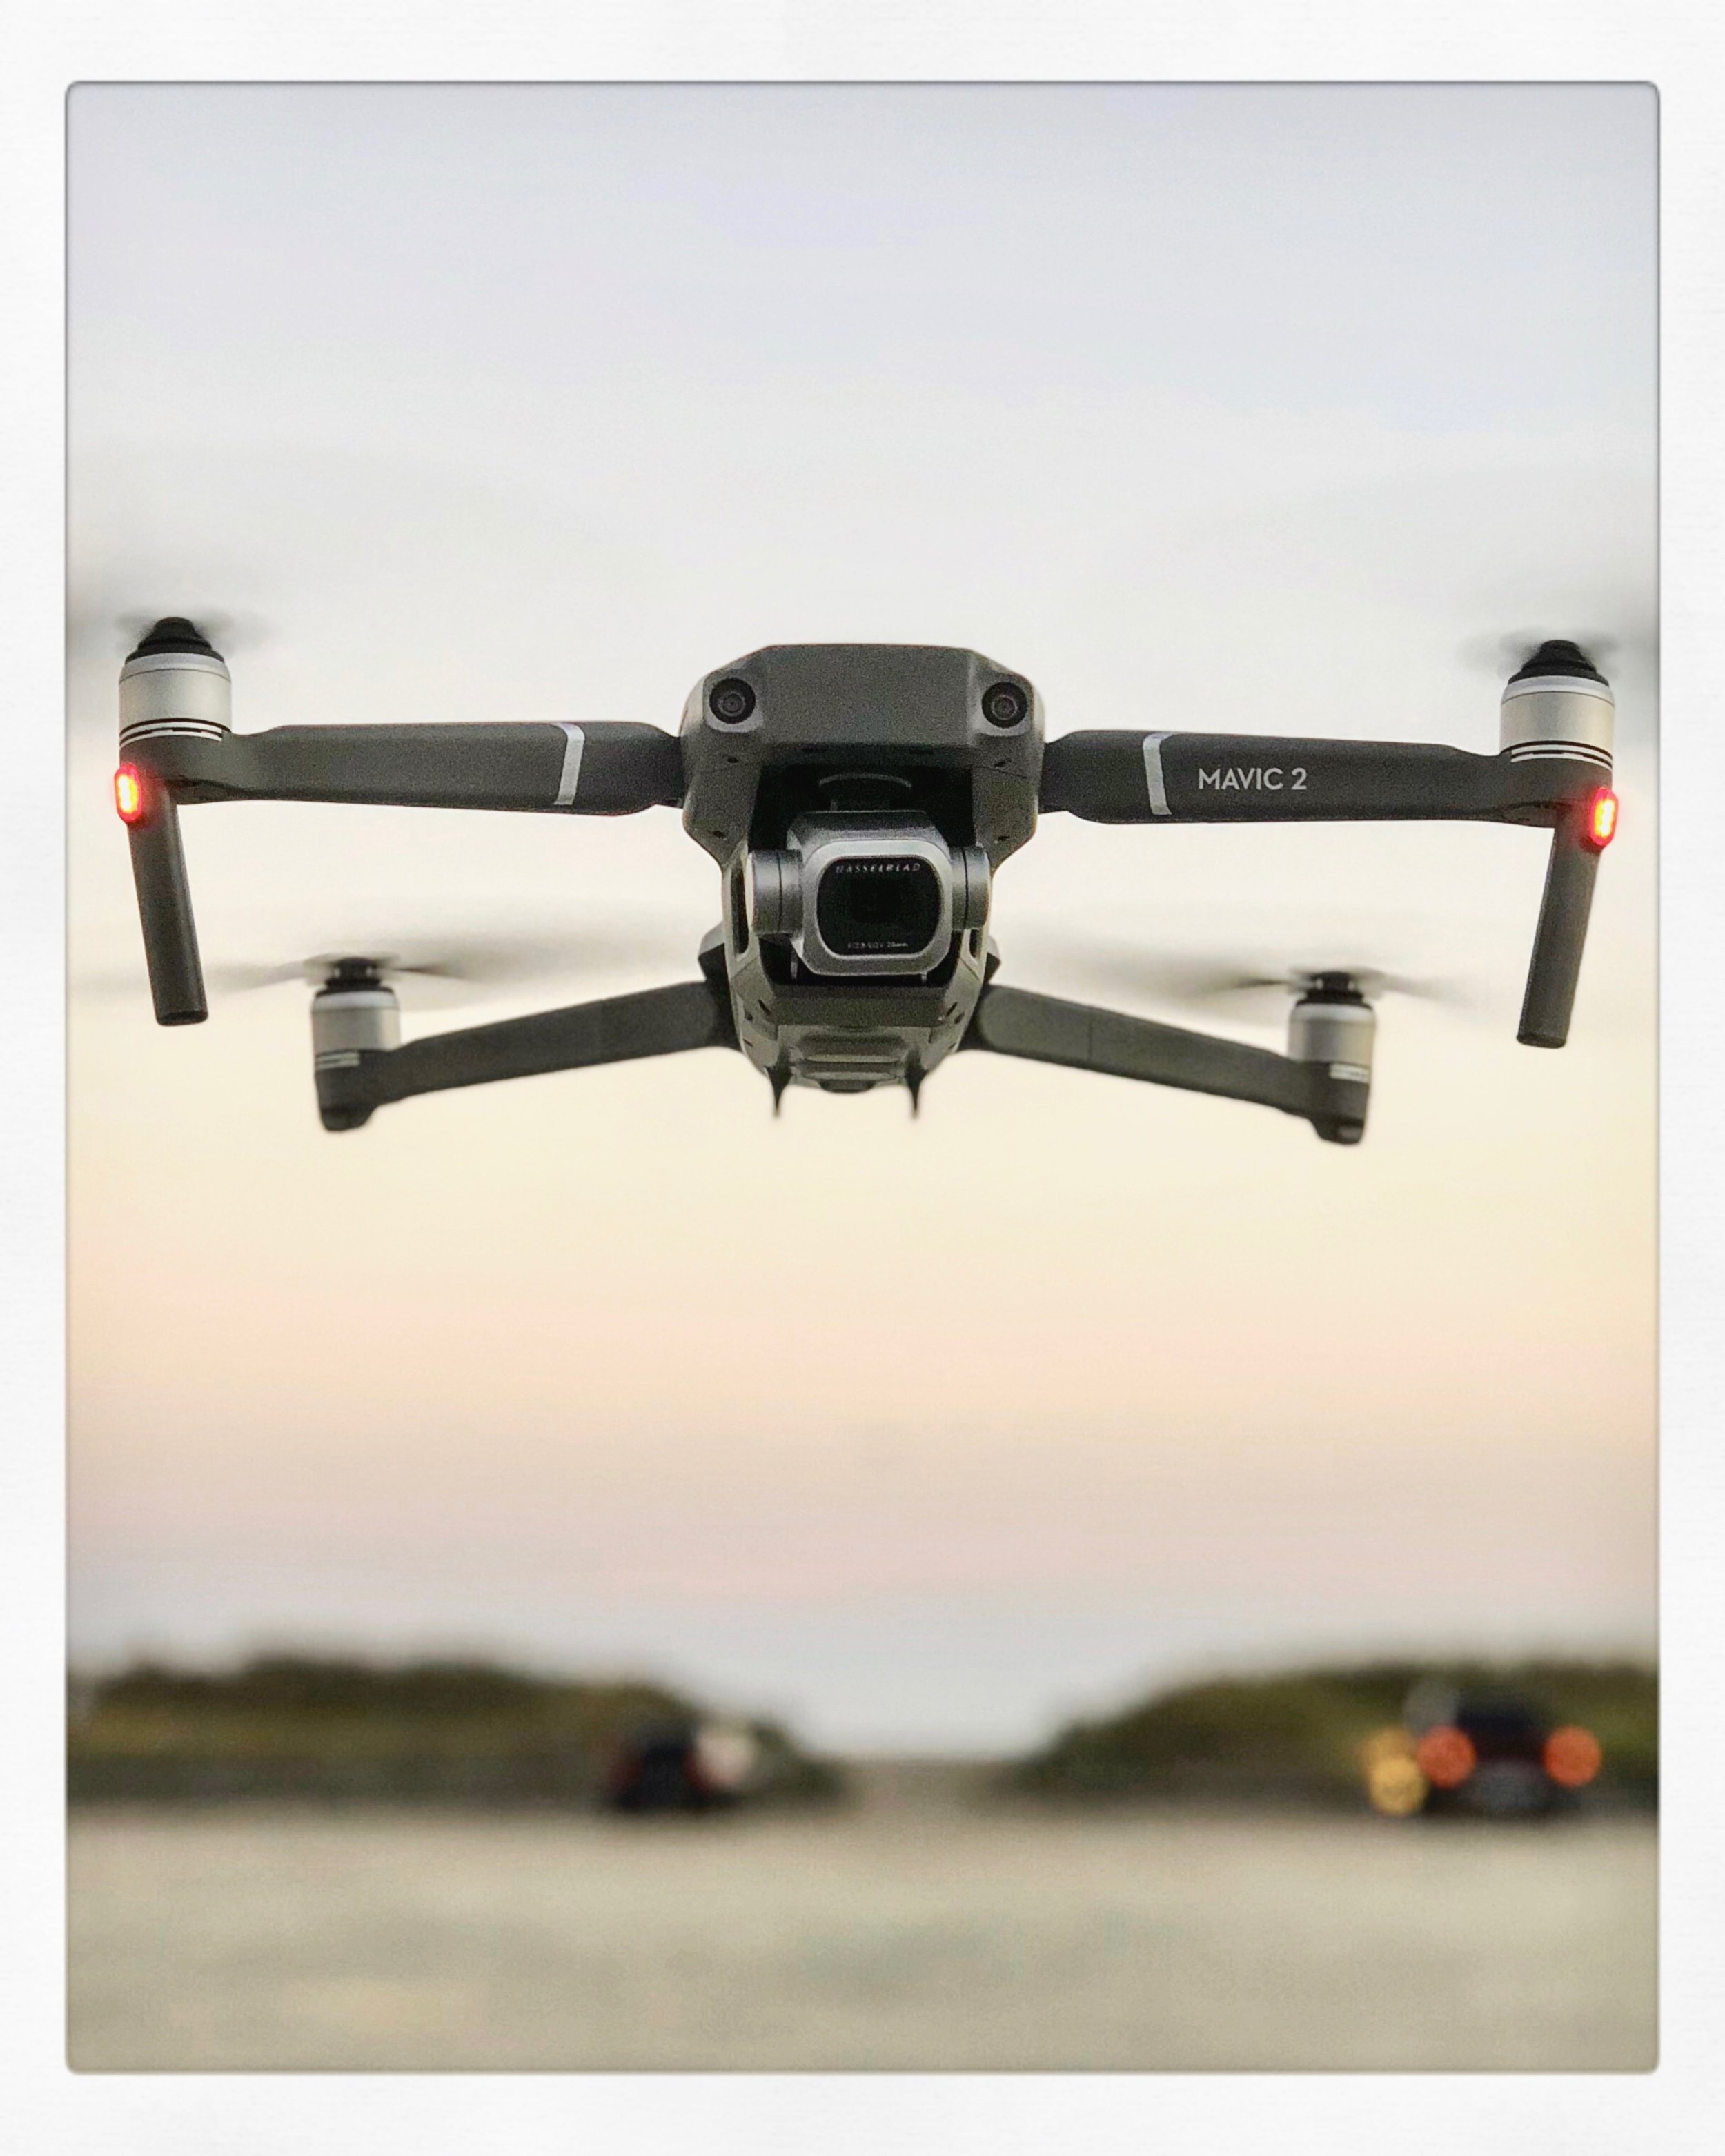 The Latest - Mavic Pro 2